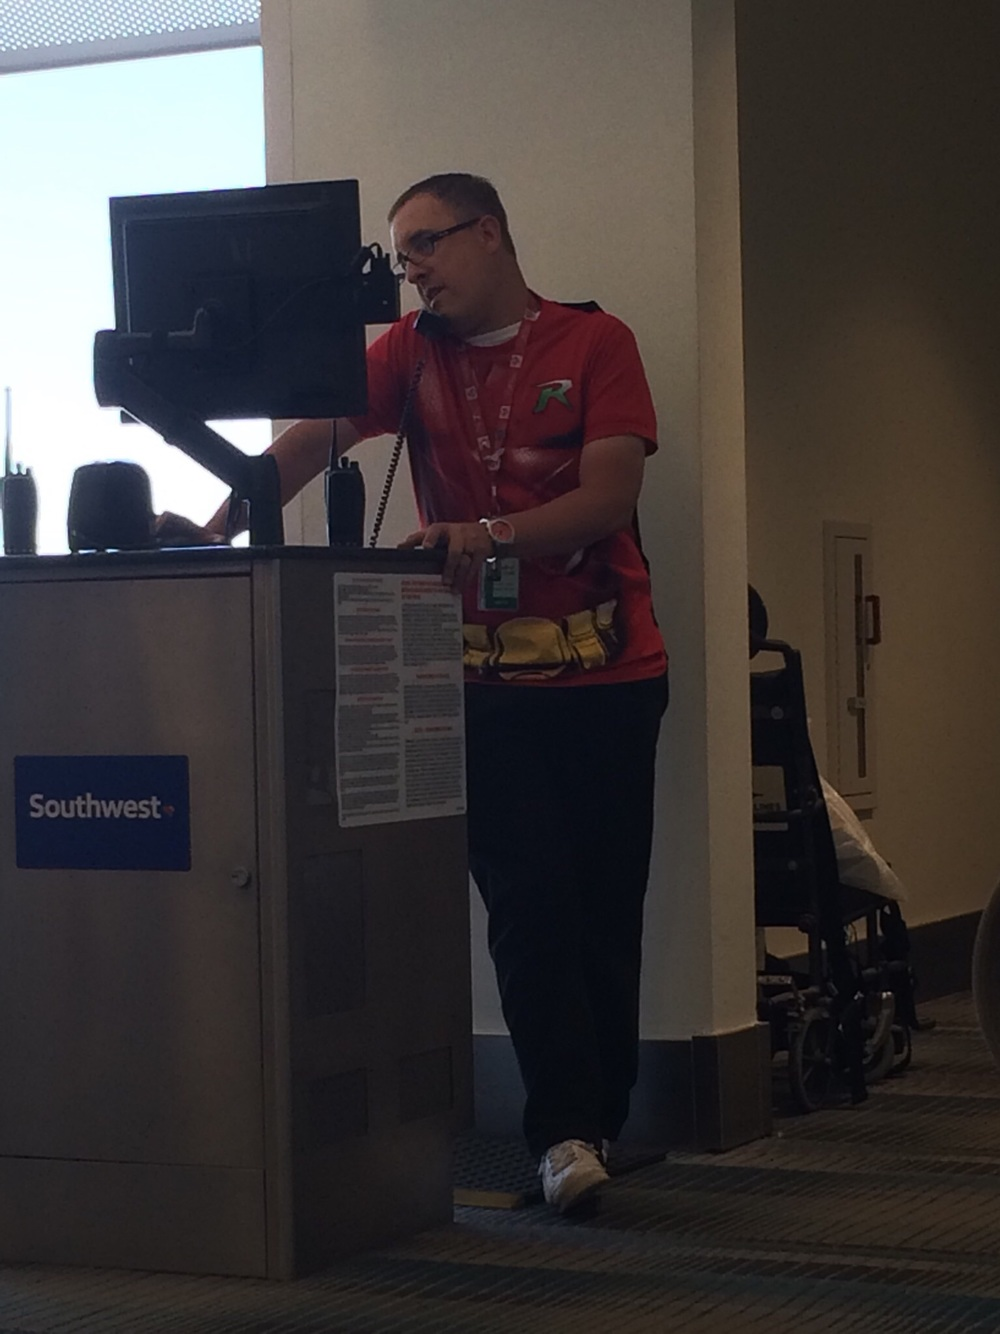 Superheroes of Southwest Airlines